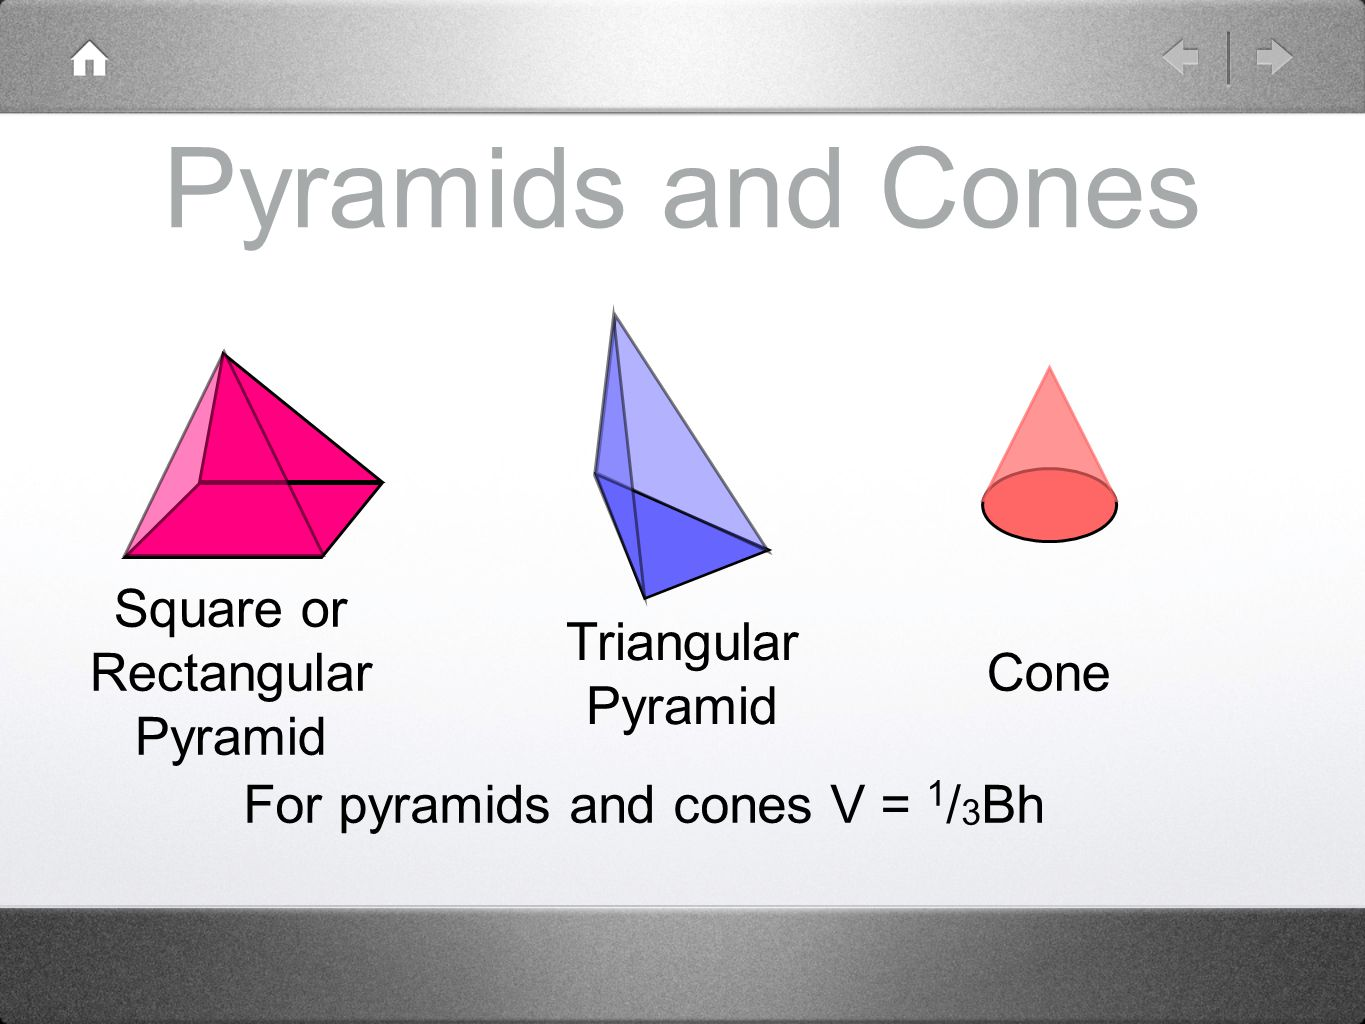 For pyramids and cones V = 1/3Bh